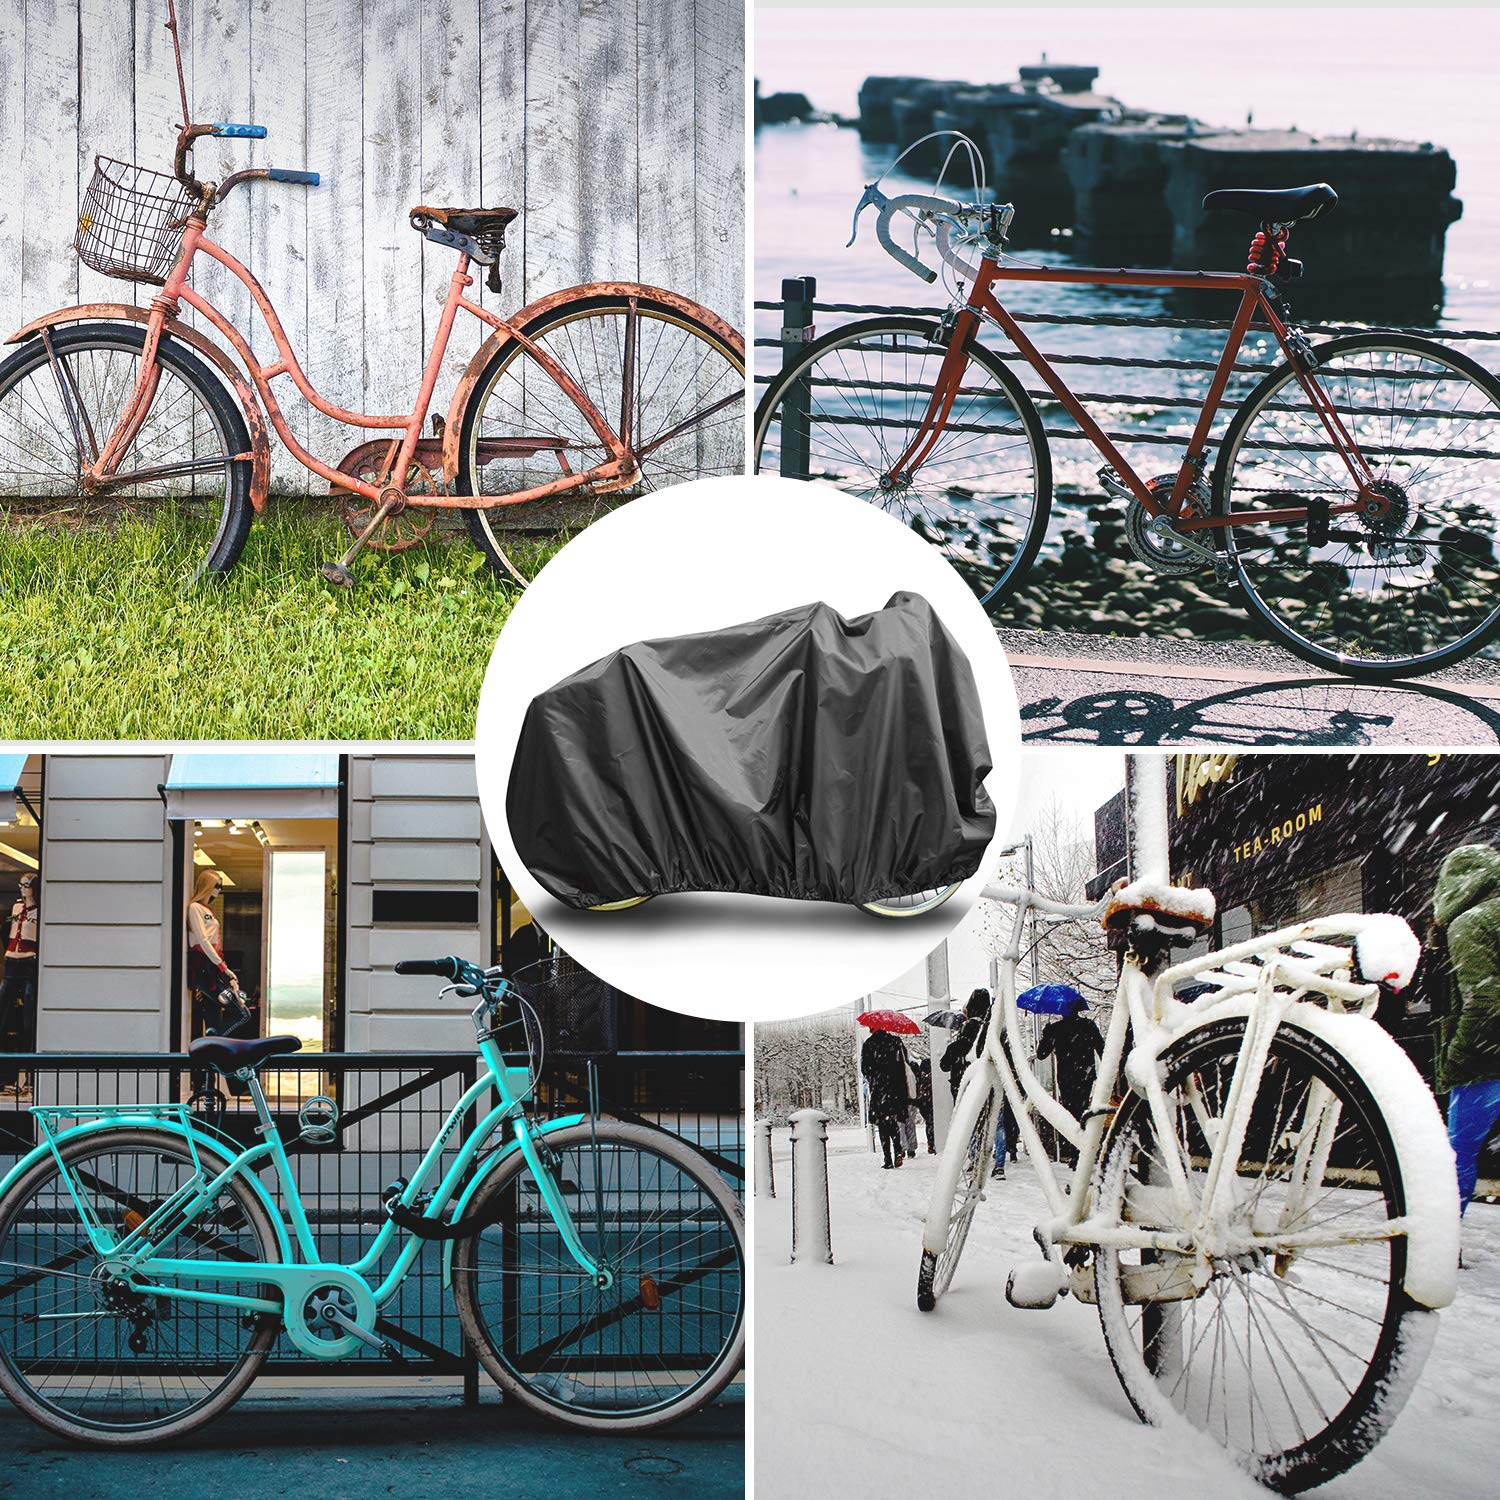 Deacroy Outdoor Bike Cover for 1 or 2 Bikes,Waterproof Anti-UV Bicycle Storage Protection from All Weather Conditions for Exercise Mountain Road Bikes